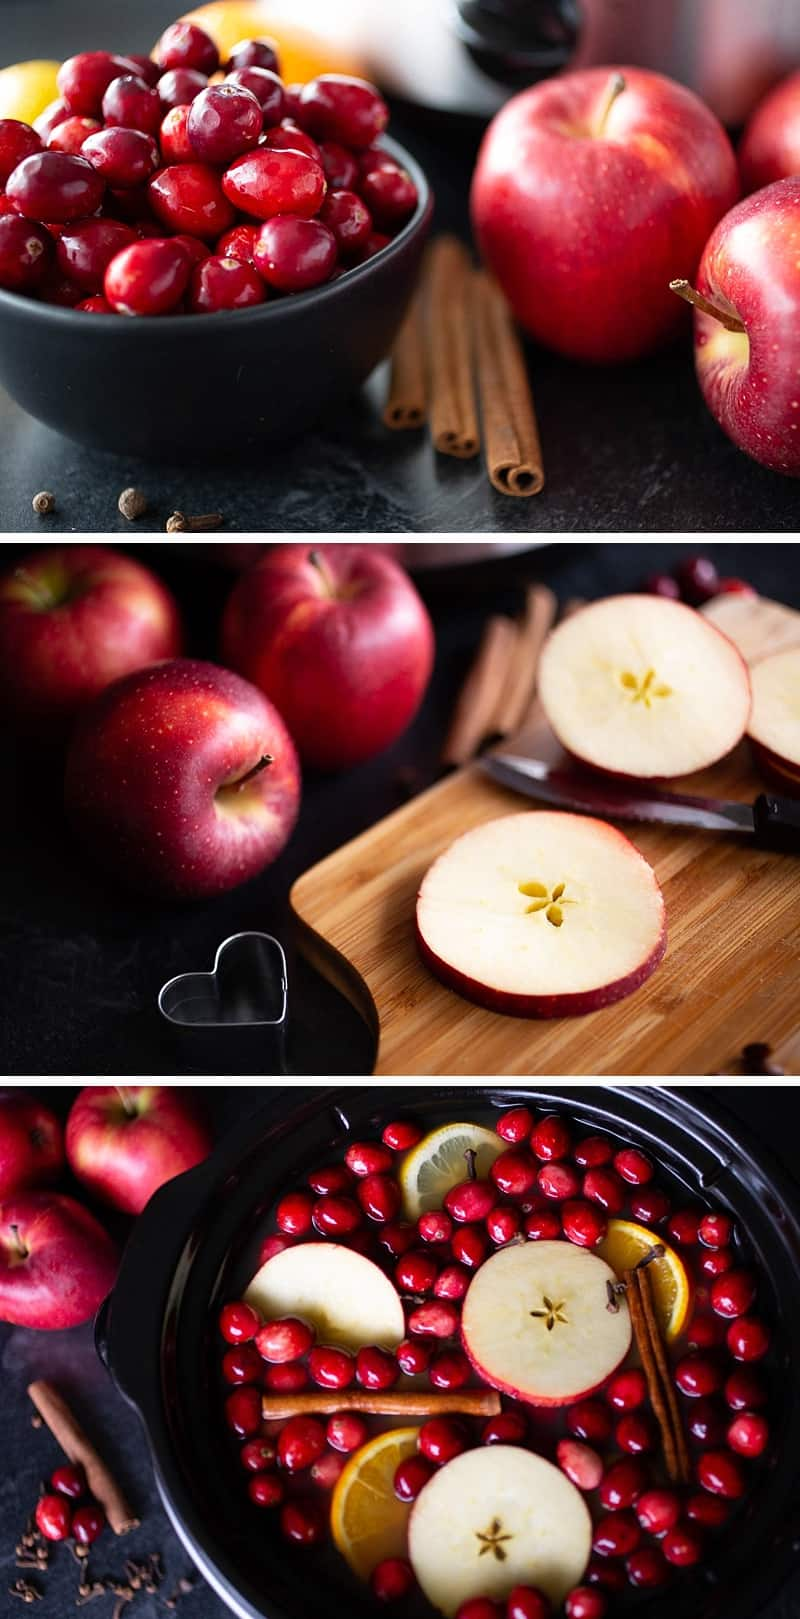 While these recipe ingredients mingle together and TASTE delicious, it's the garnishes that make this mulled cider LOOK irresistible. Here are three ways to give your mulled cider IRRESISTIBLE holiday charm . . . #crockpot #crockpotrecipes #slowcooker #slowcookerrecipes #recipes #drinkrecipes #thanksgivingrecipes #christmasrecipes #easypeasydrinks #cider #mulledcider #applecider *This Crock Pot recipe is so simple and my family loves it.